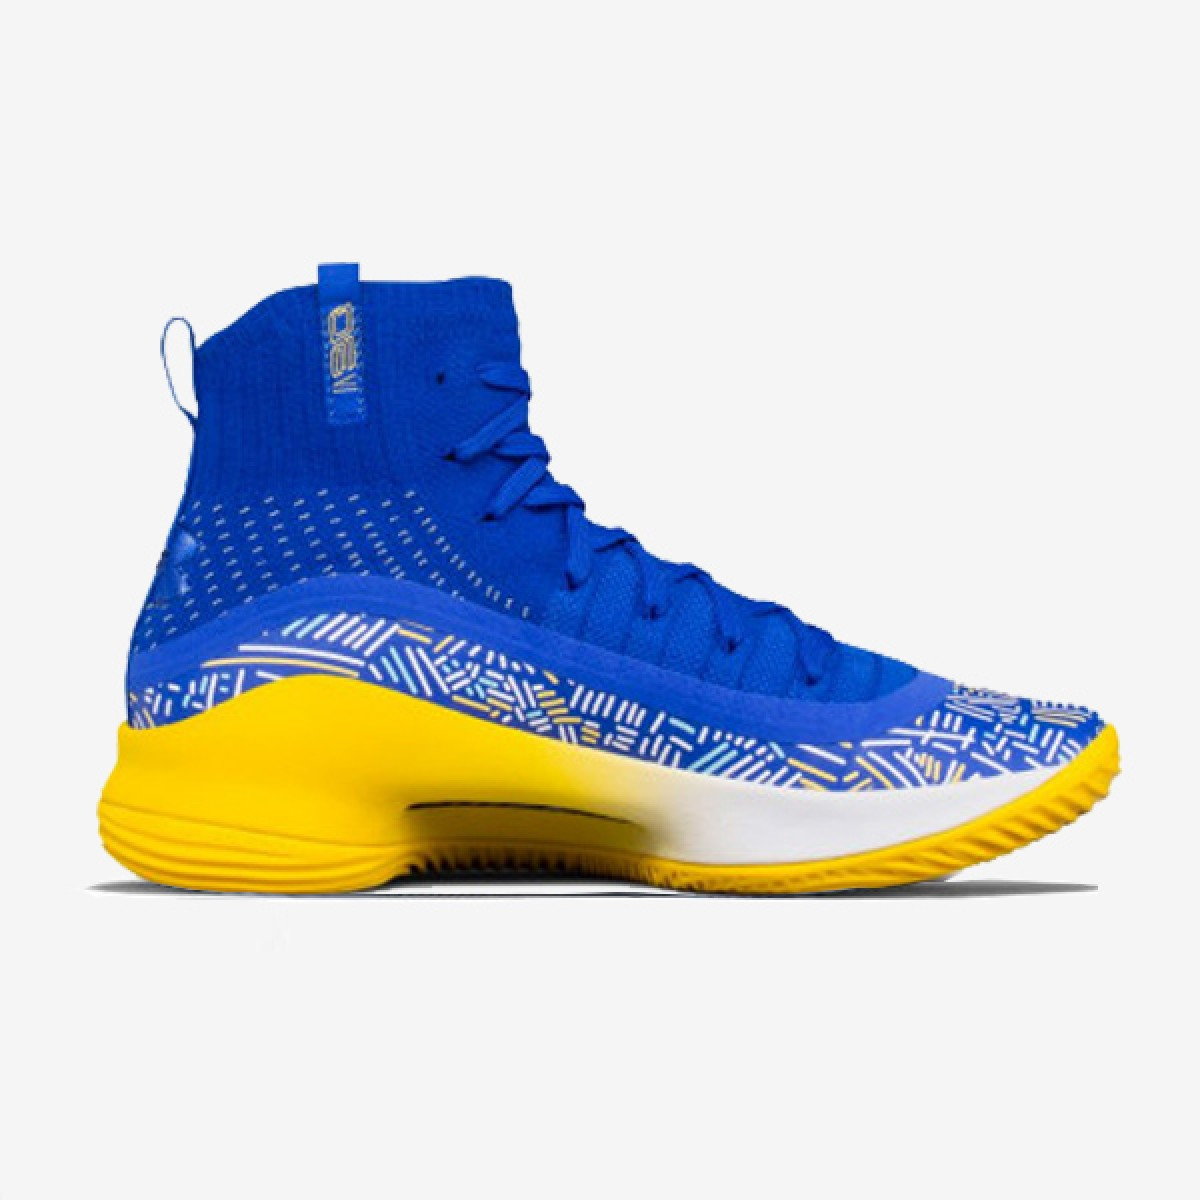 competitive price f662d 12503 Buy Under Armour Curry 4 GS 'More Fun' Basketball shoes & sneakers